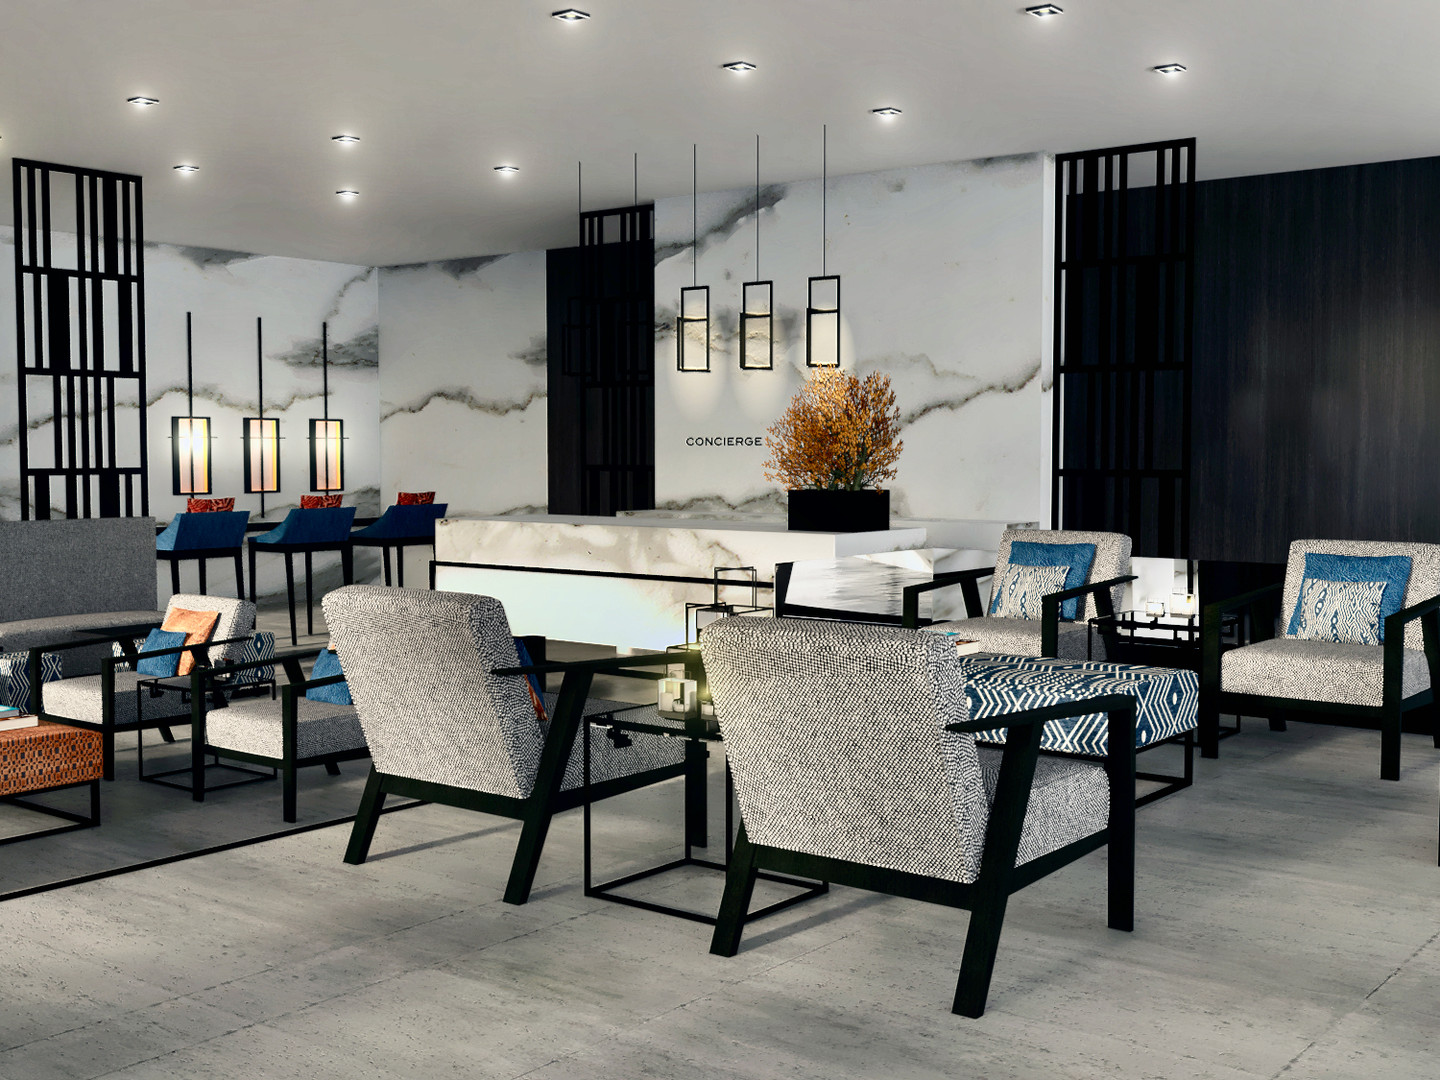 Hotel and Restaurant Interior Designers in Jersey